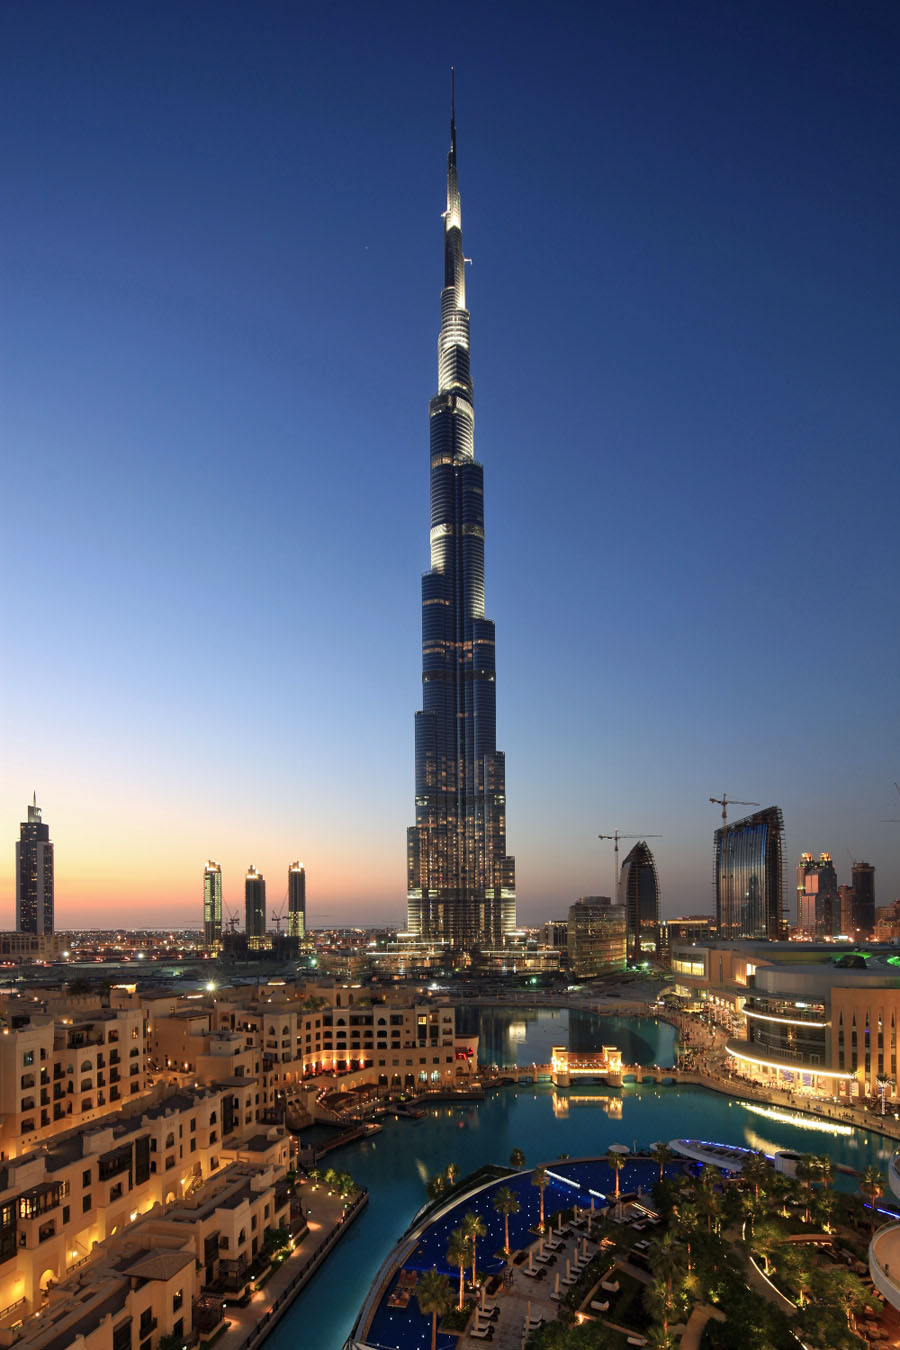 Burj-Khalifa, Dubai (Tallest Building In The World) [16 Pic] ~ Awesome Pictures